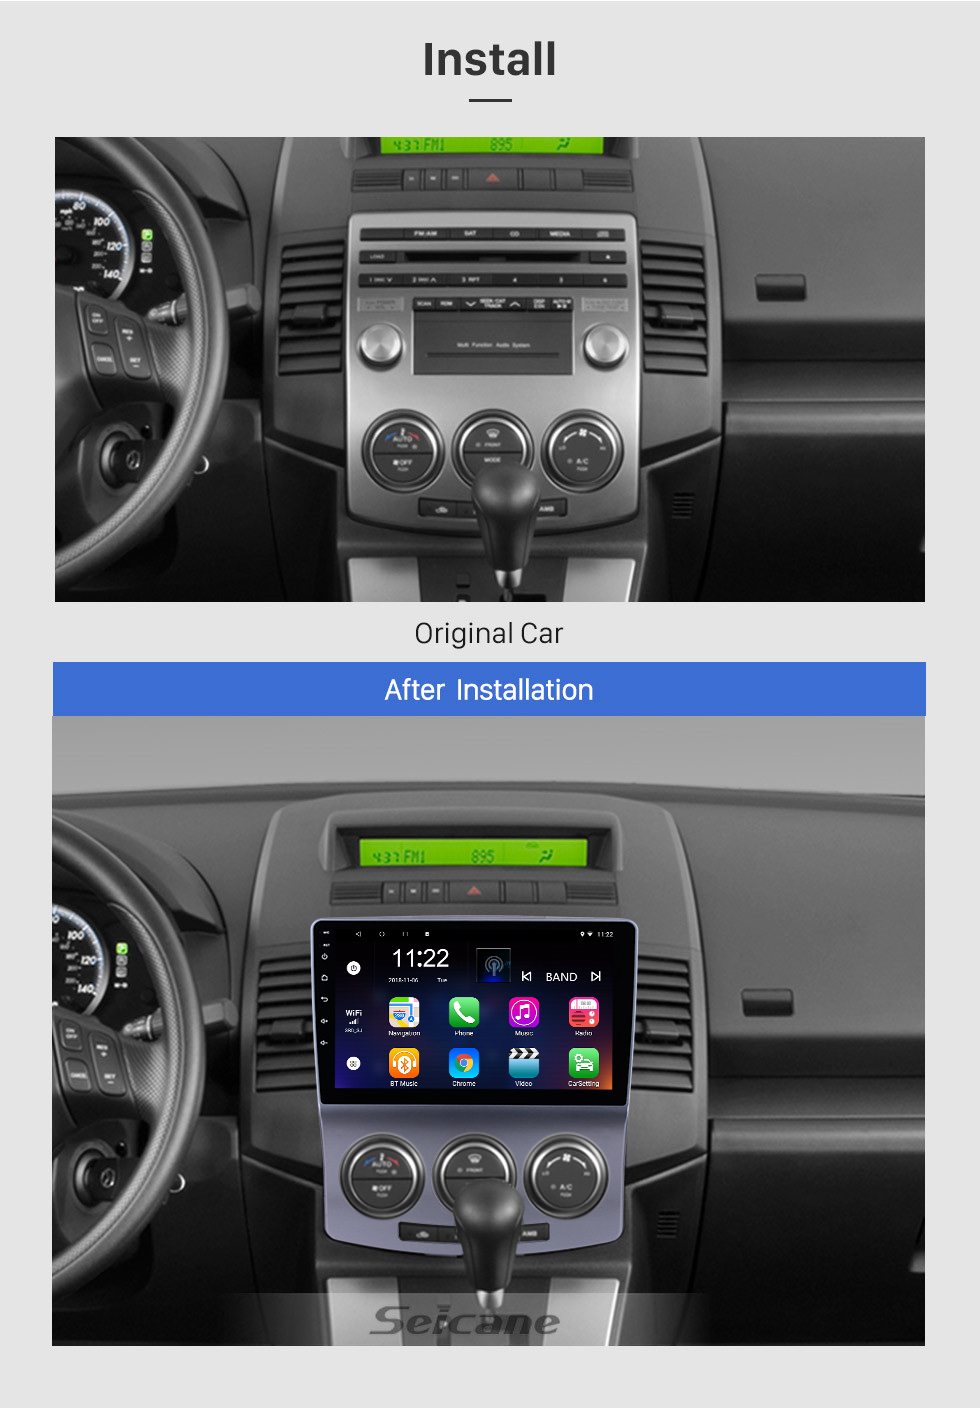 Seicane 2005-2010 Old Mazda 5 Android 8.1 GPS Navigation Radio 9 inch HD Touchscreen with Bluetooth USB WIFI support Carplay OBD2 DAB+ Mirror Link